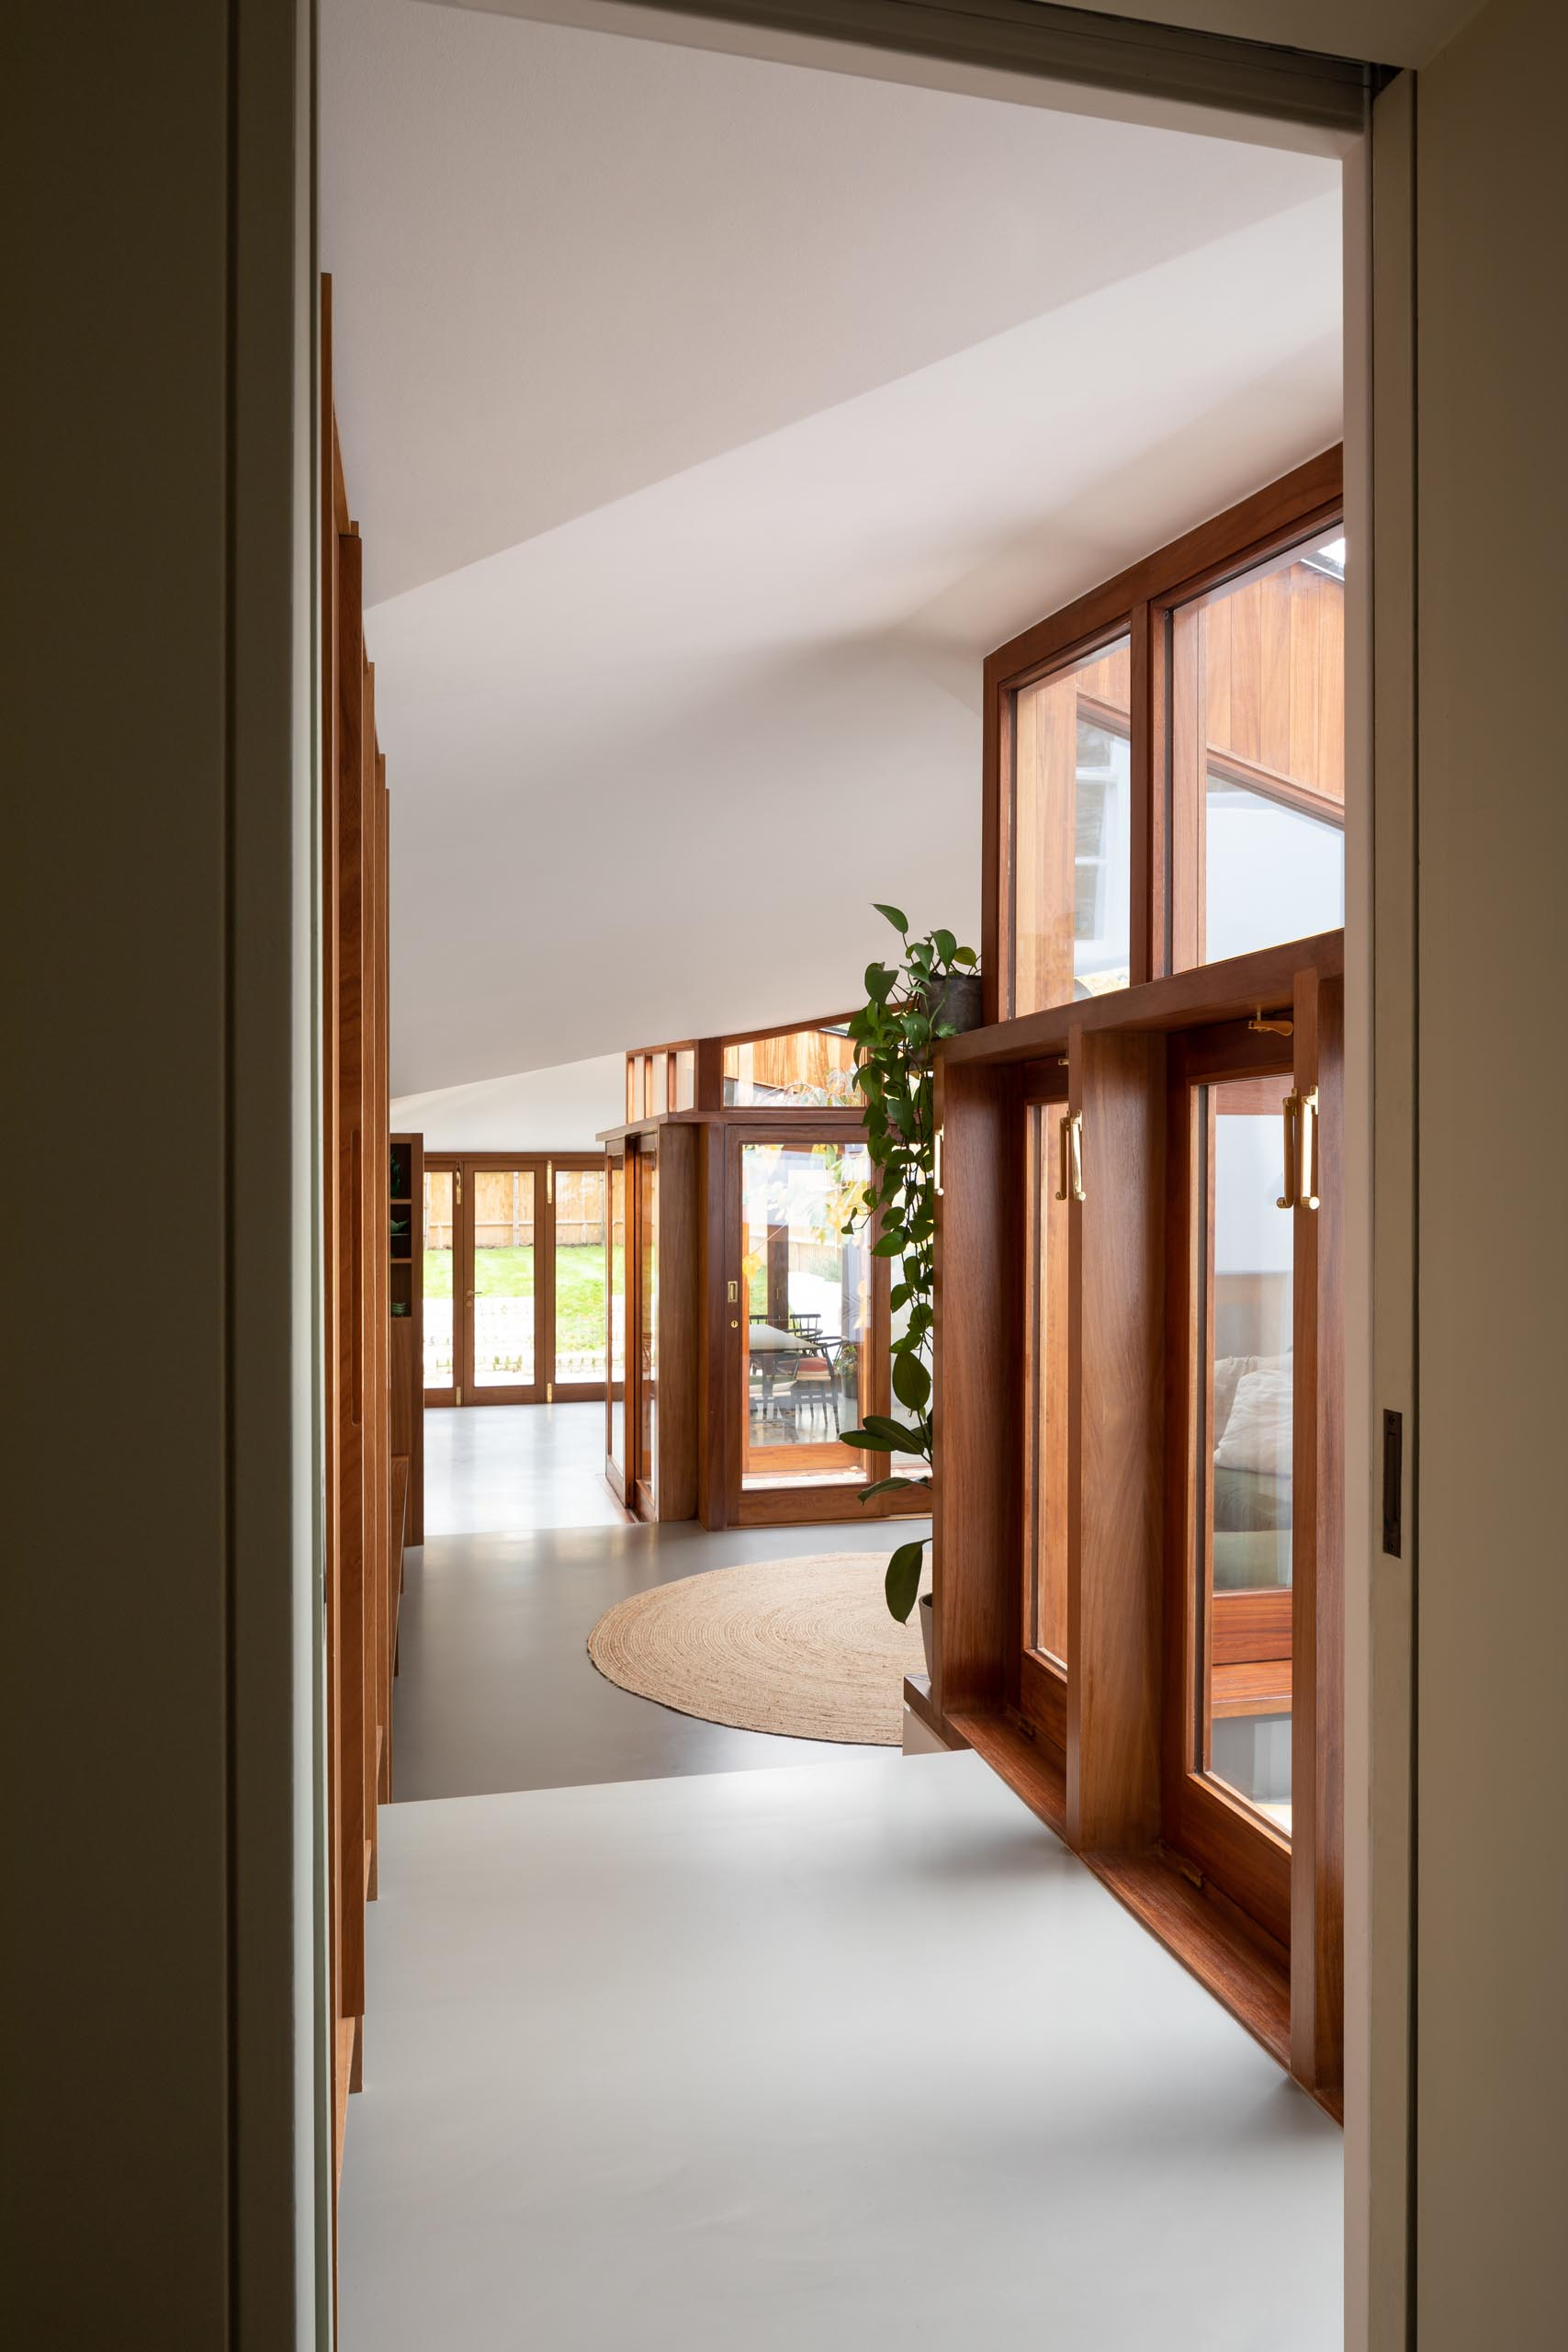 The thick wood window and door frames of a modern extension add a warmth to the interior.